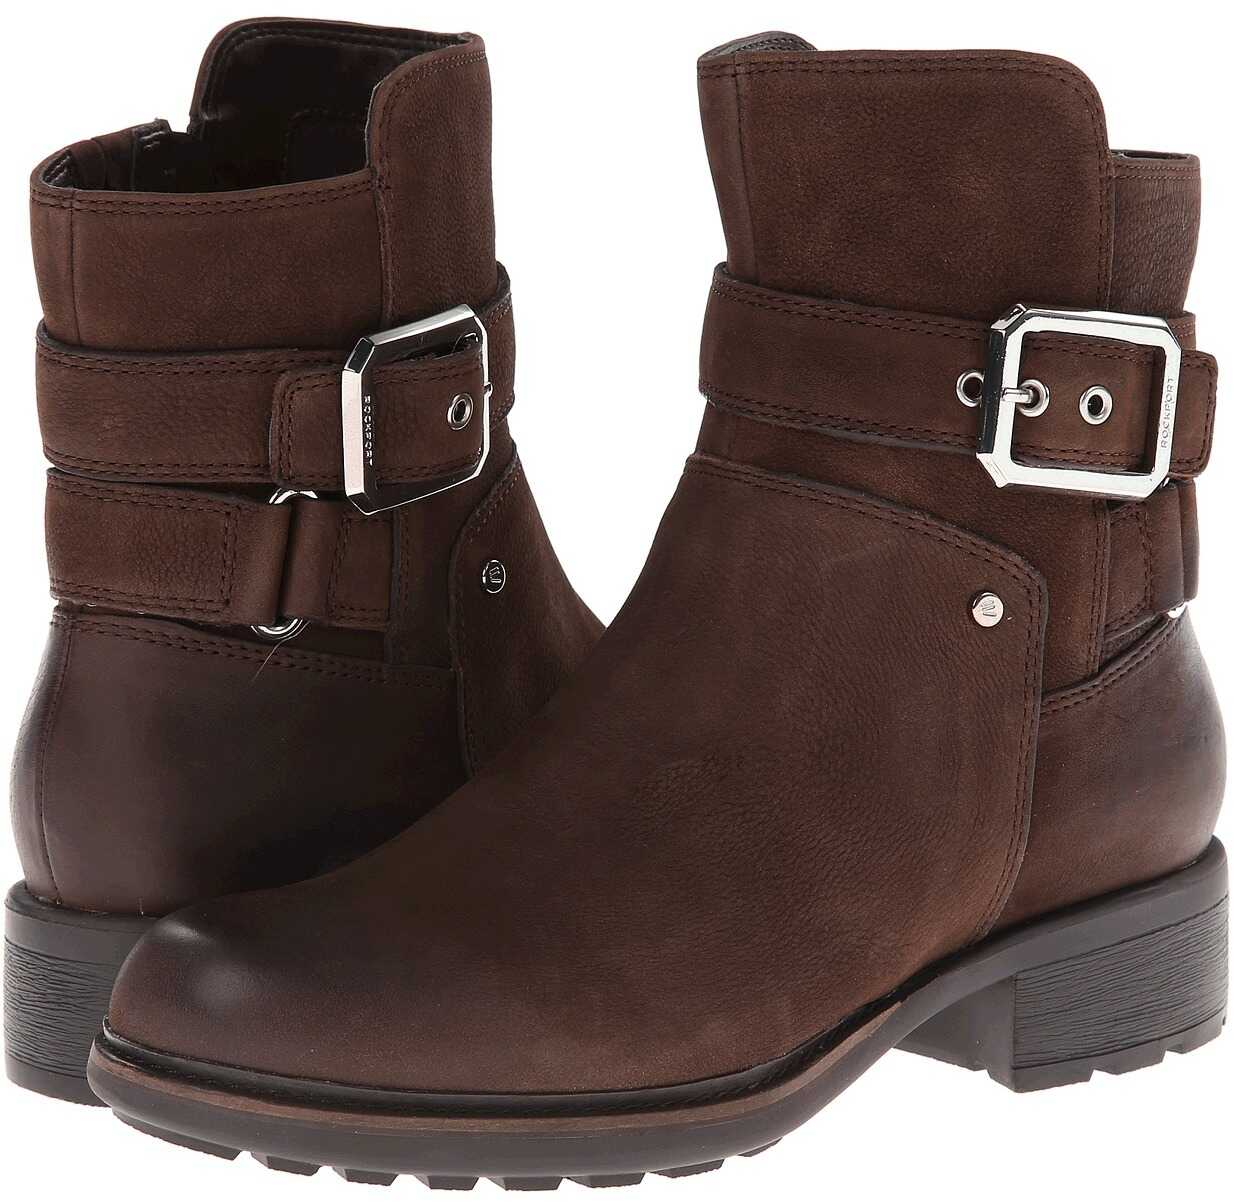 Rockport First Street Moto Strap Bootie - Ankle* Ebano Burnished